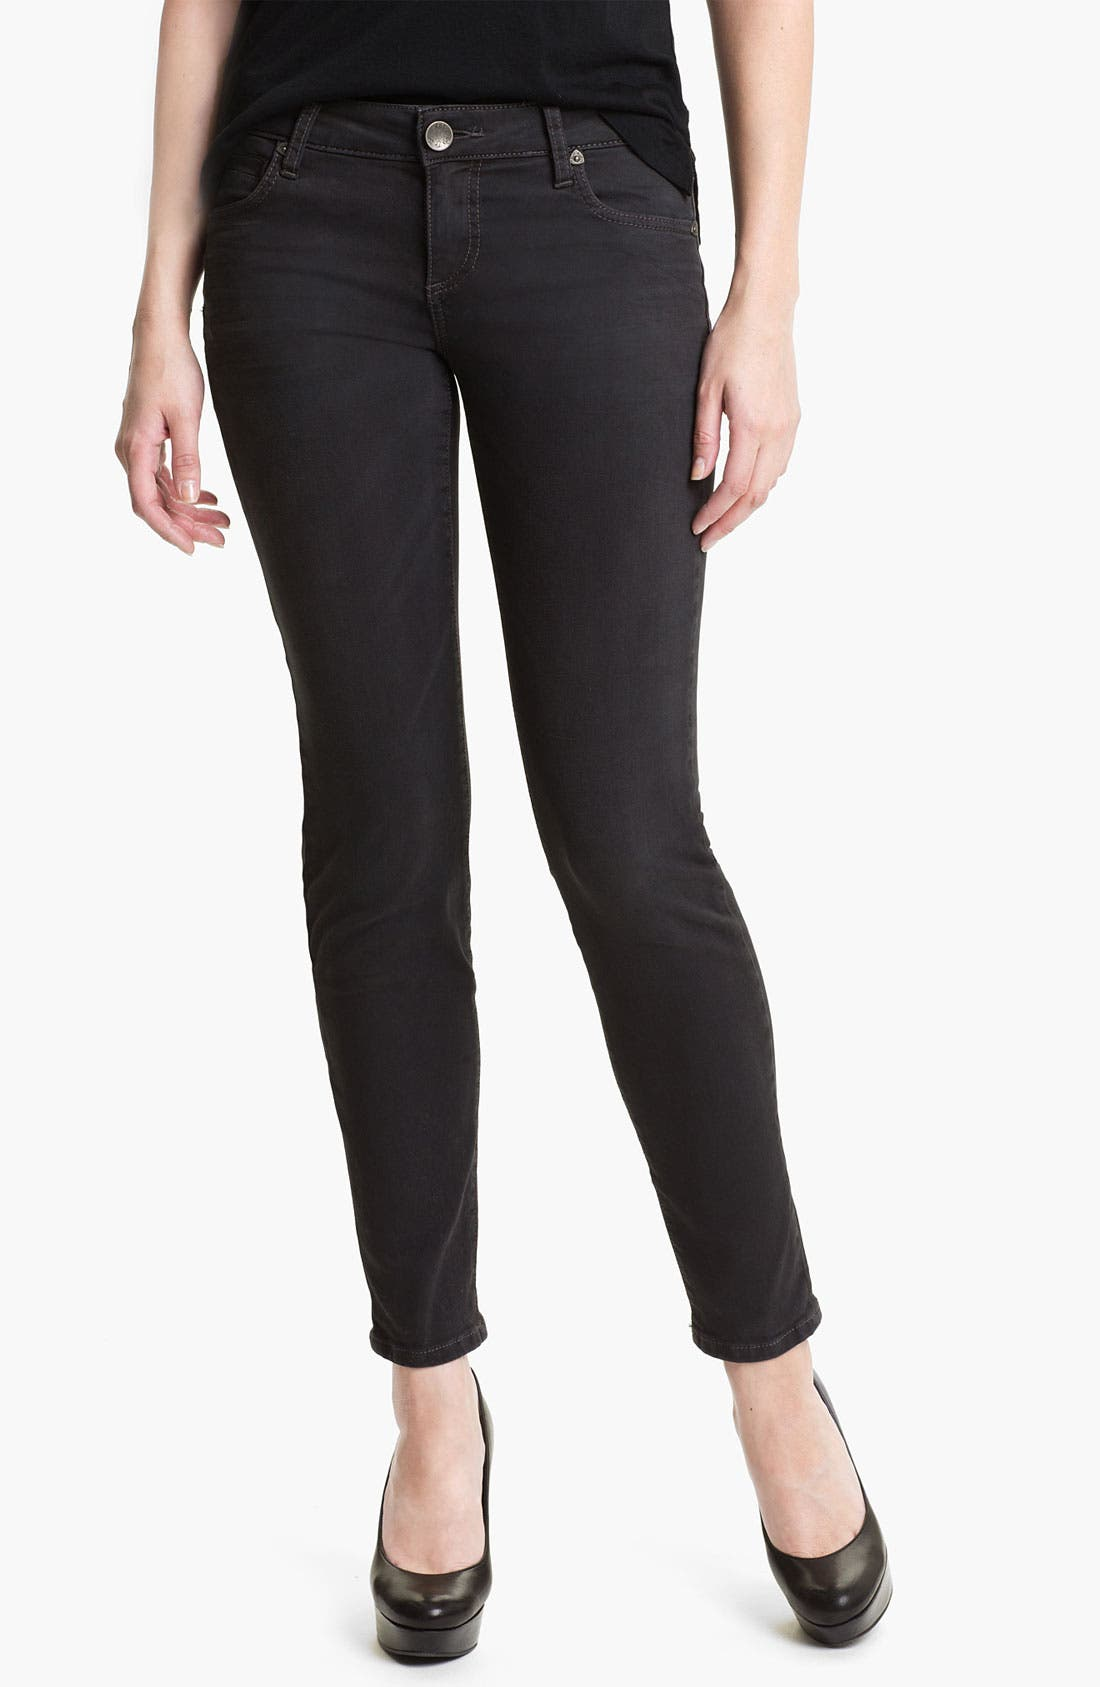 Alternate Image 1 Selected - KUT from the Kloth 'Diana' Skinny Jeans (Heavenly)